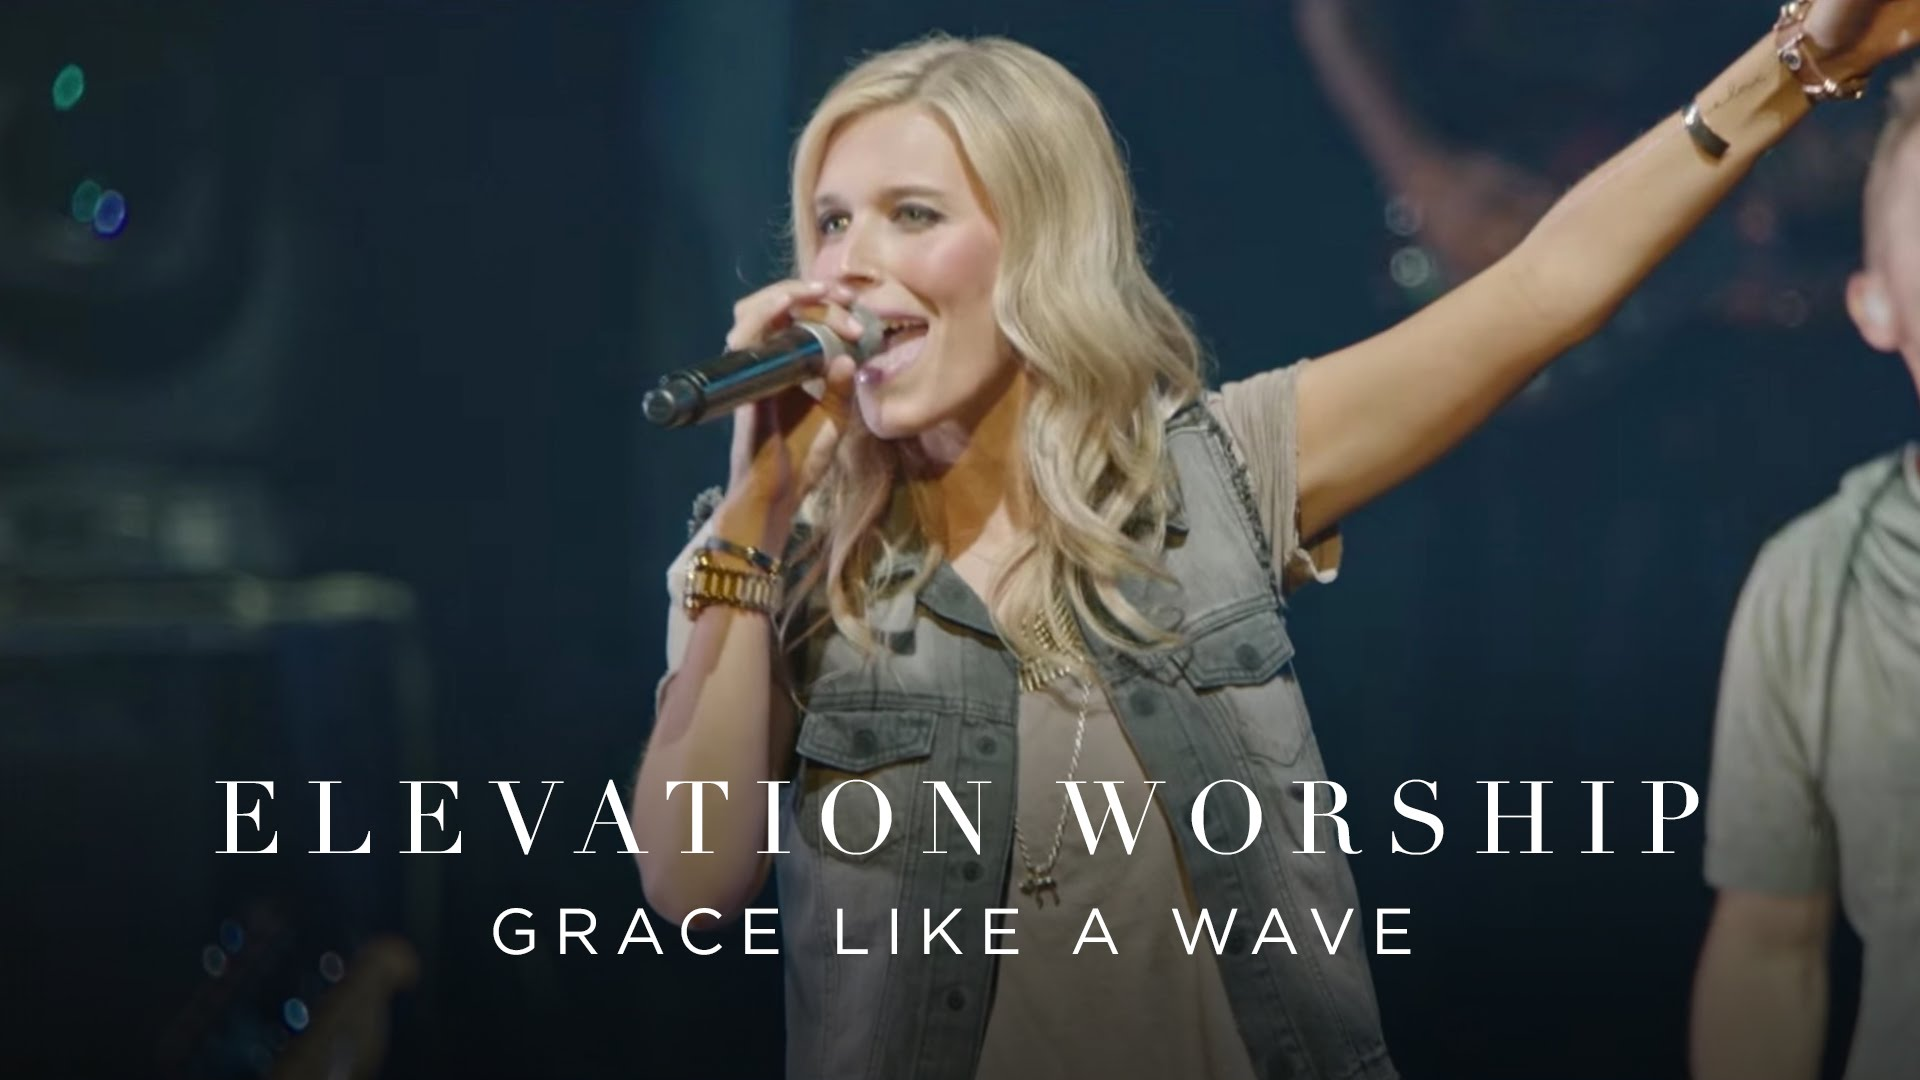 Grace, Crashing Over Me, Grace Comes Like A Wave, Elevation Worship